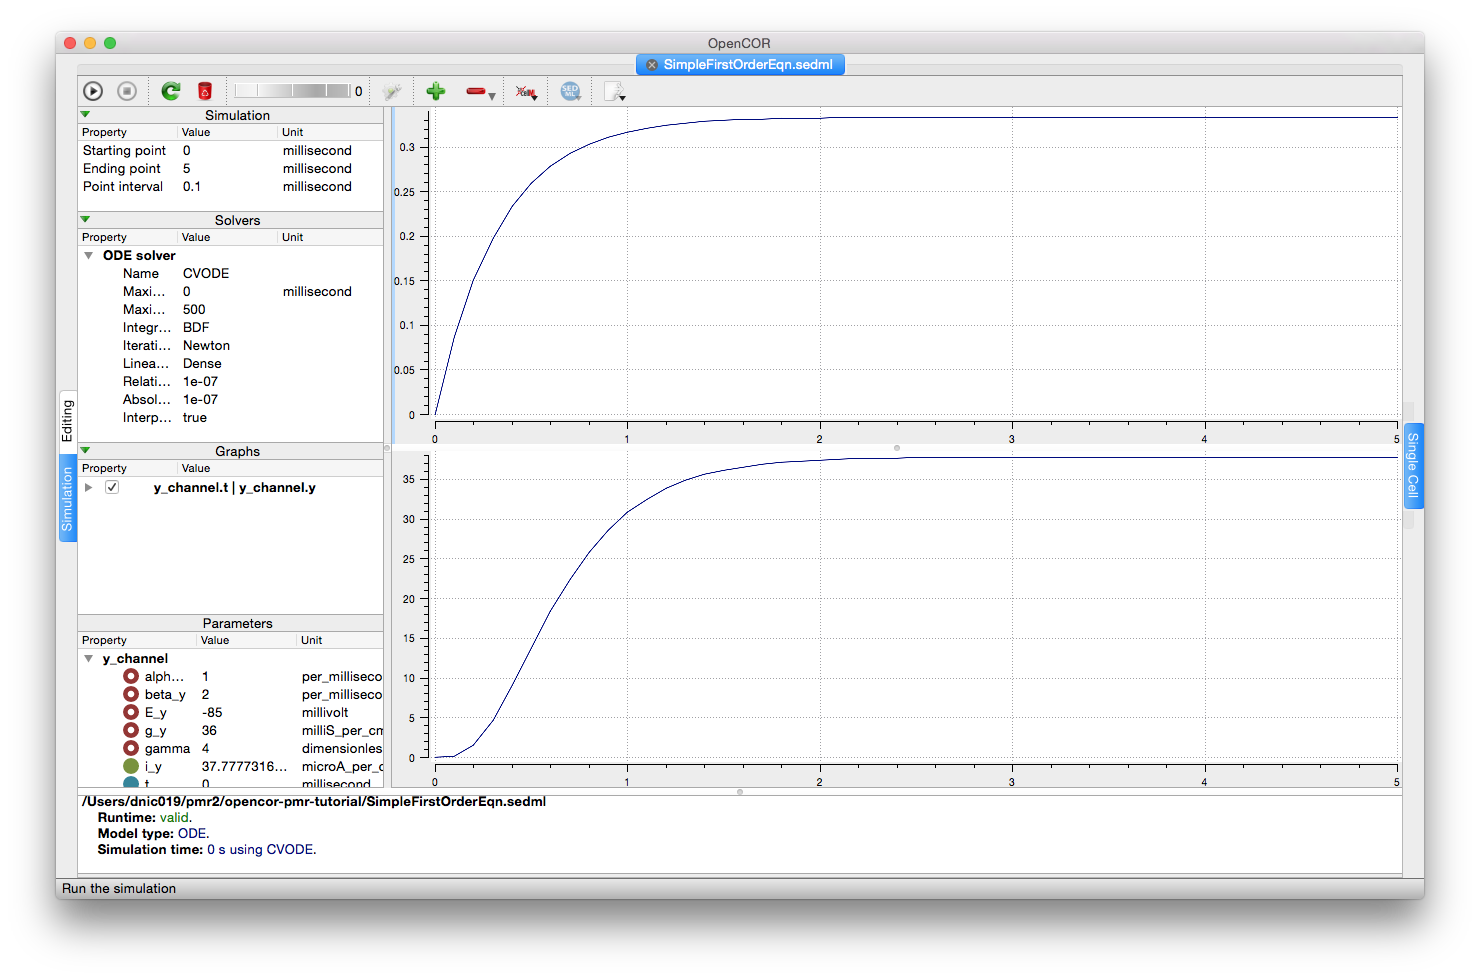 Screenshot illustrating the results of executing this first order equation simulation experiment in OpenCOR.